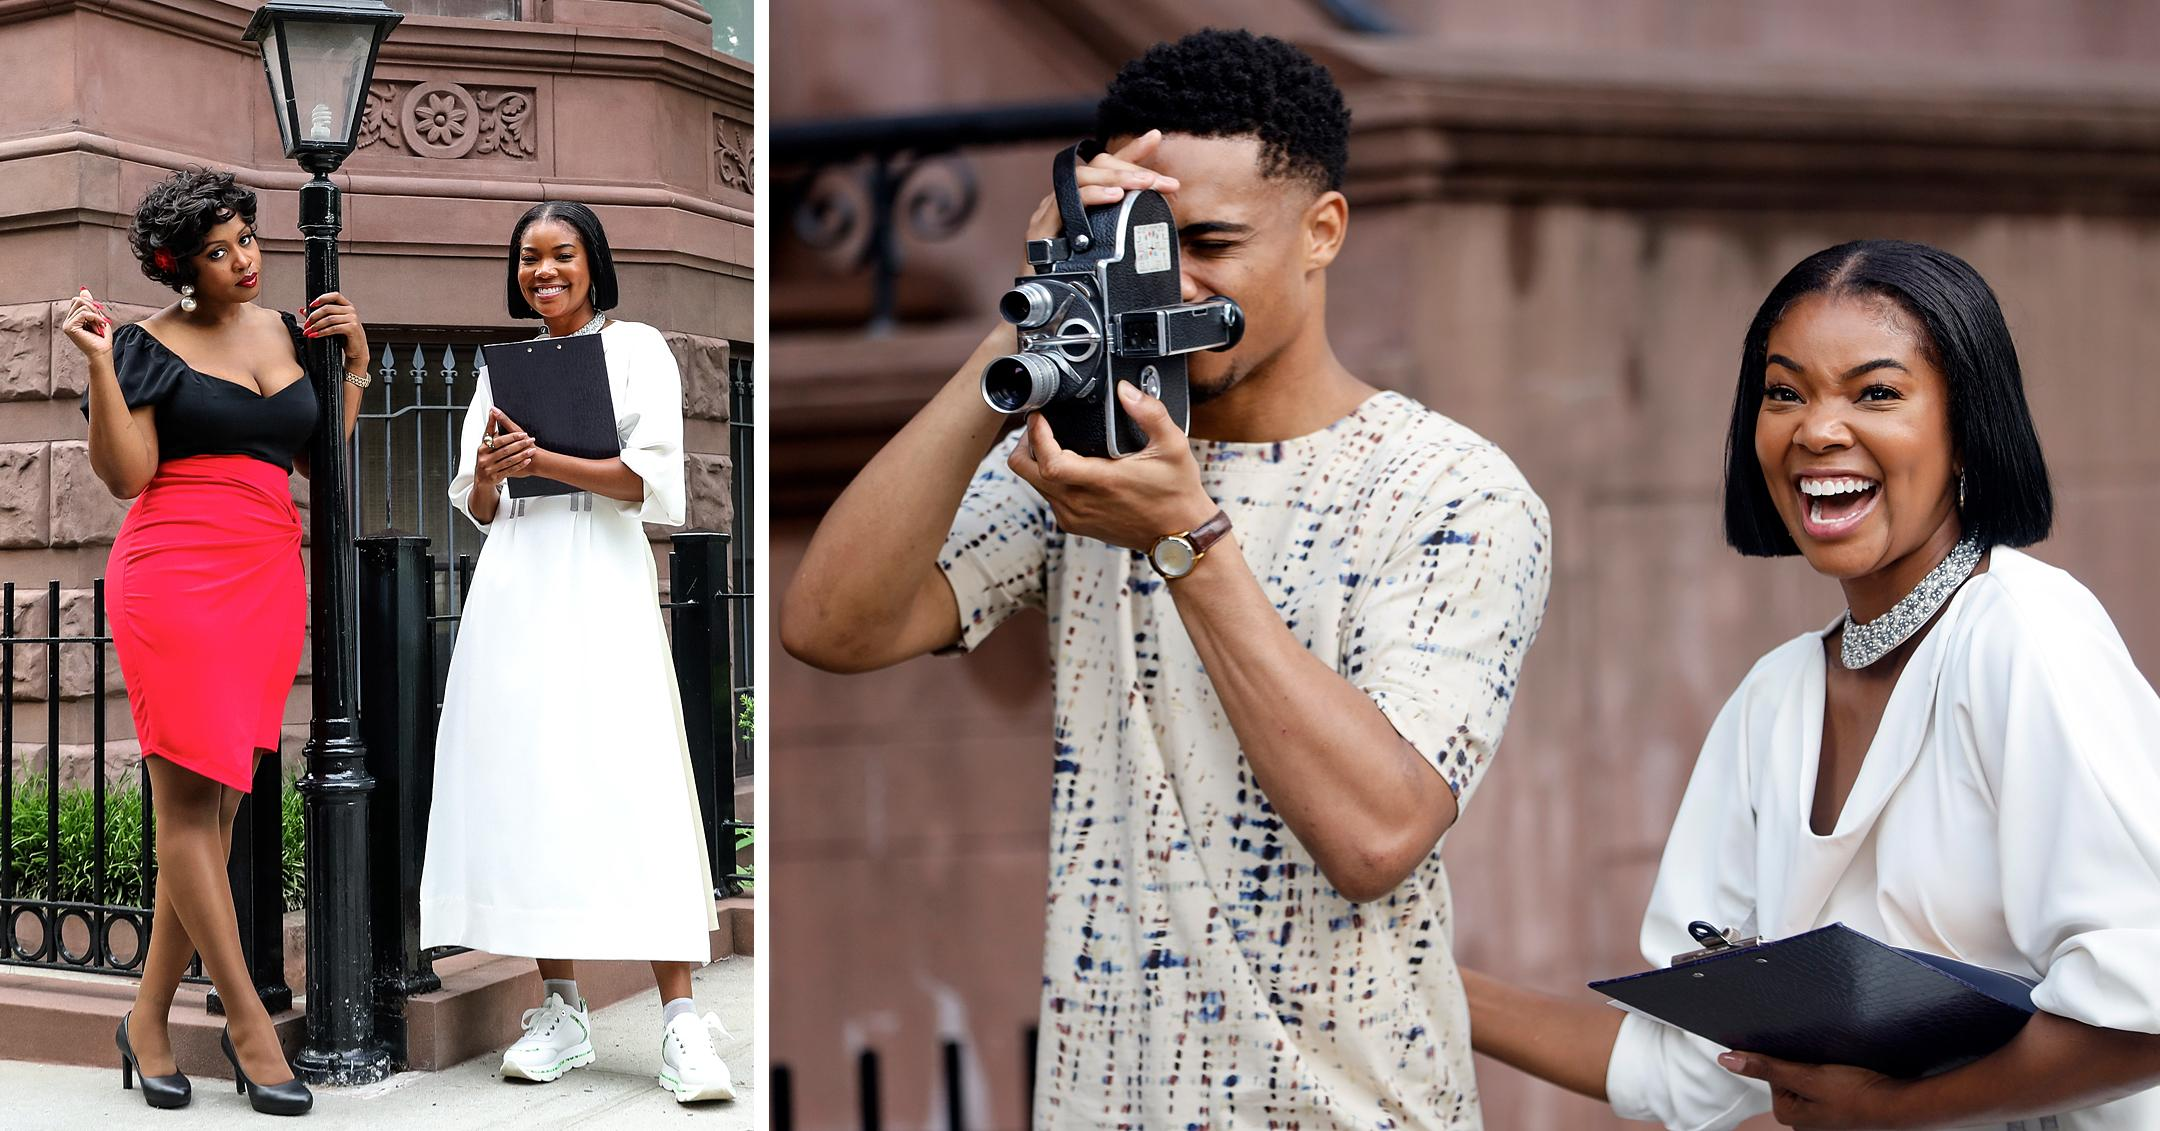 gabrielle union remy ma keith powers filming the perfect find